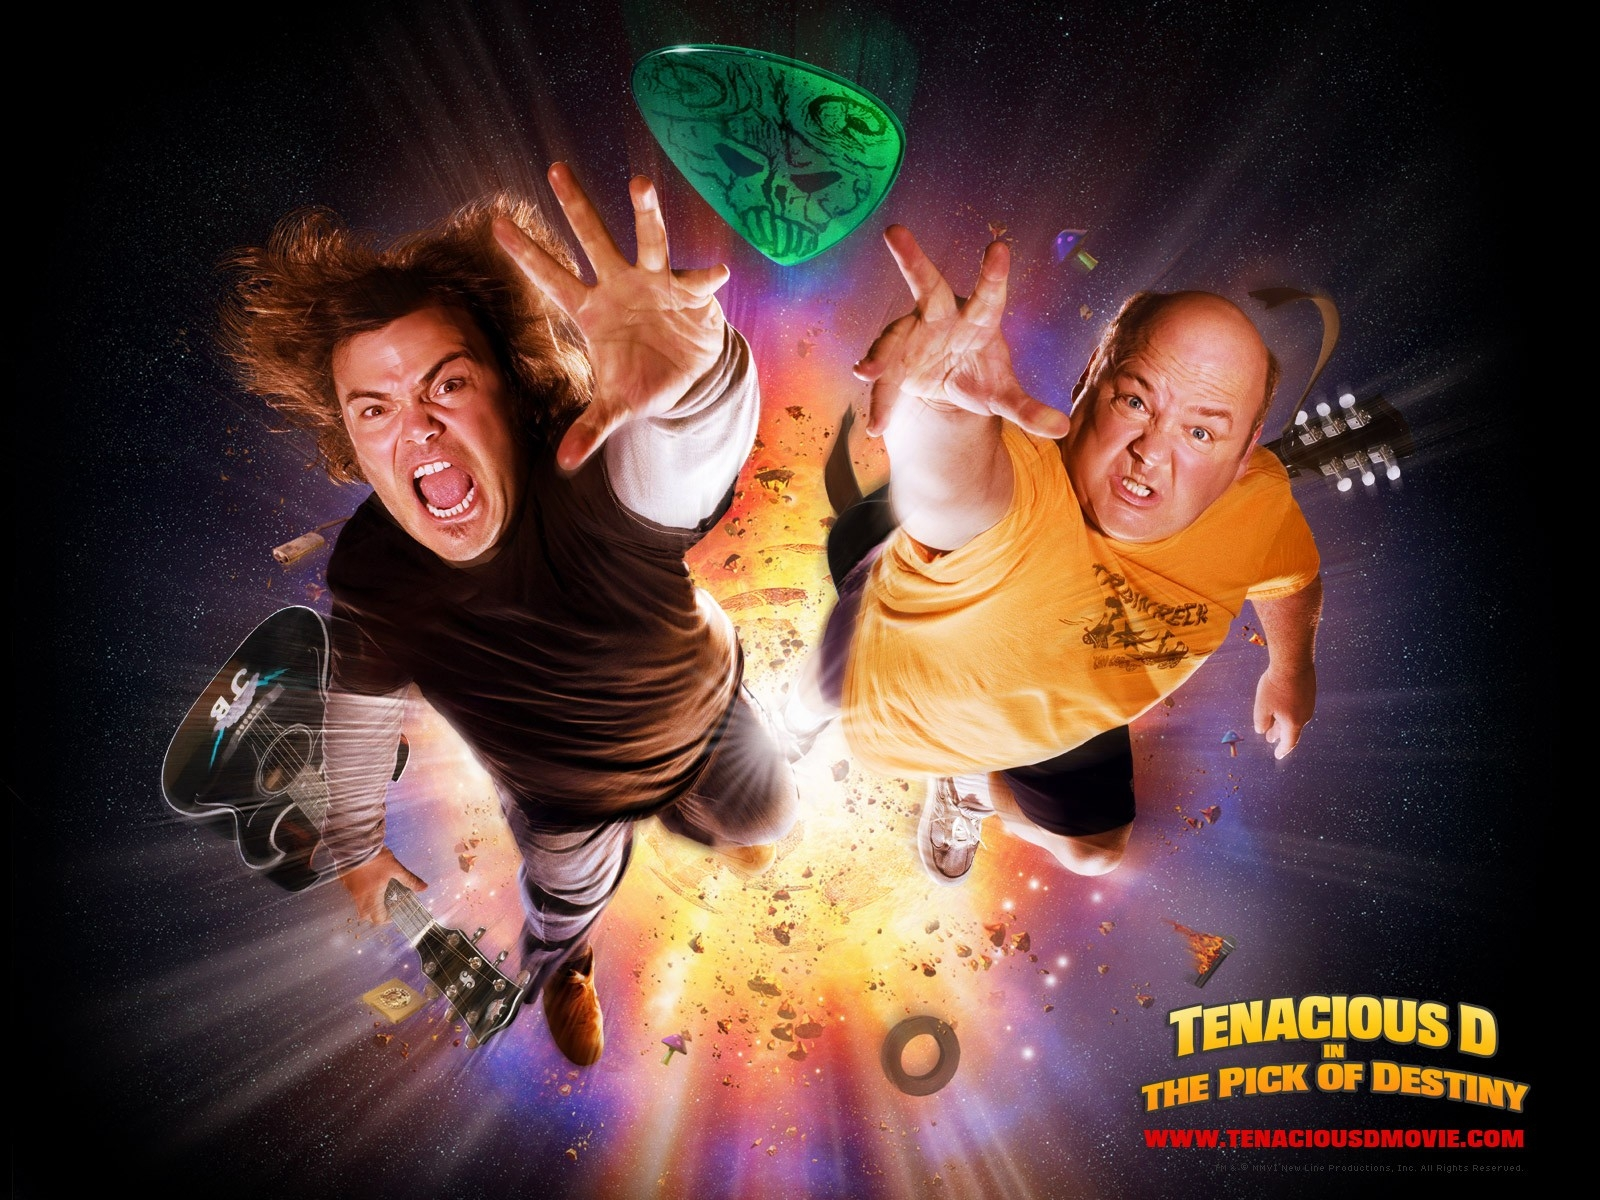 Wallpaper del film Tenacious D e il destino del rock con Jack Black